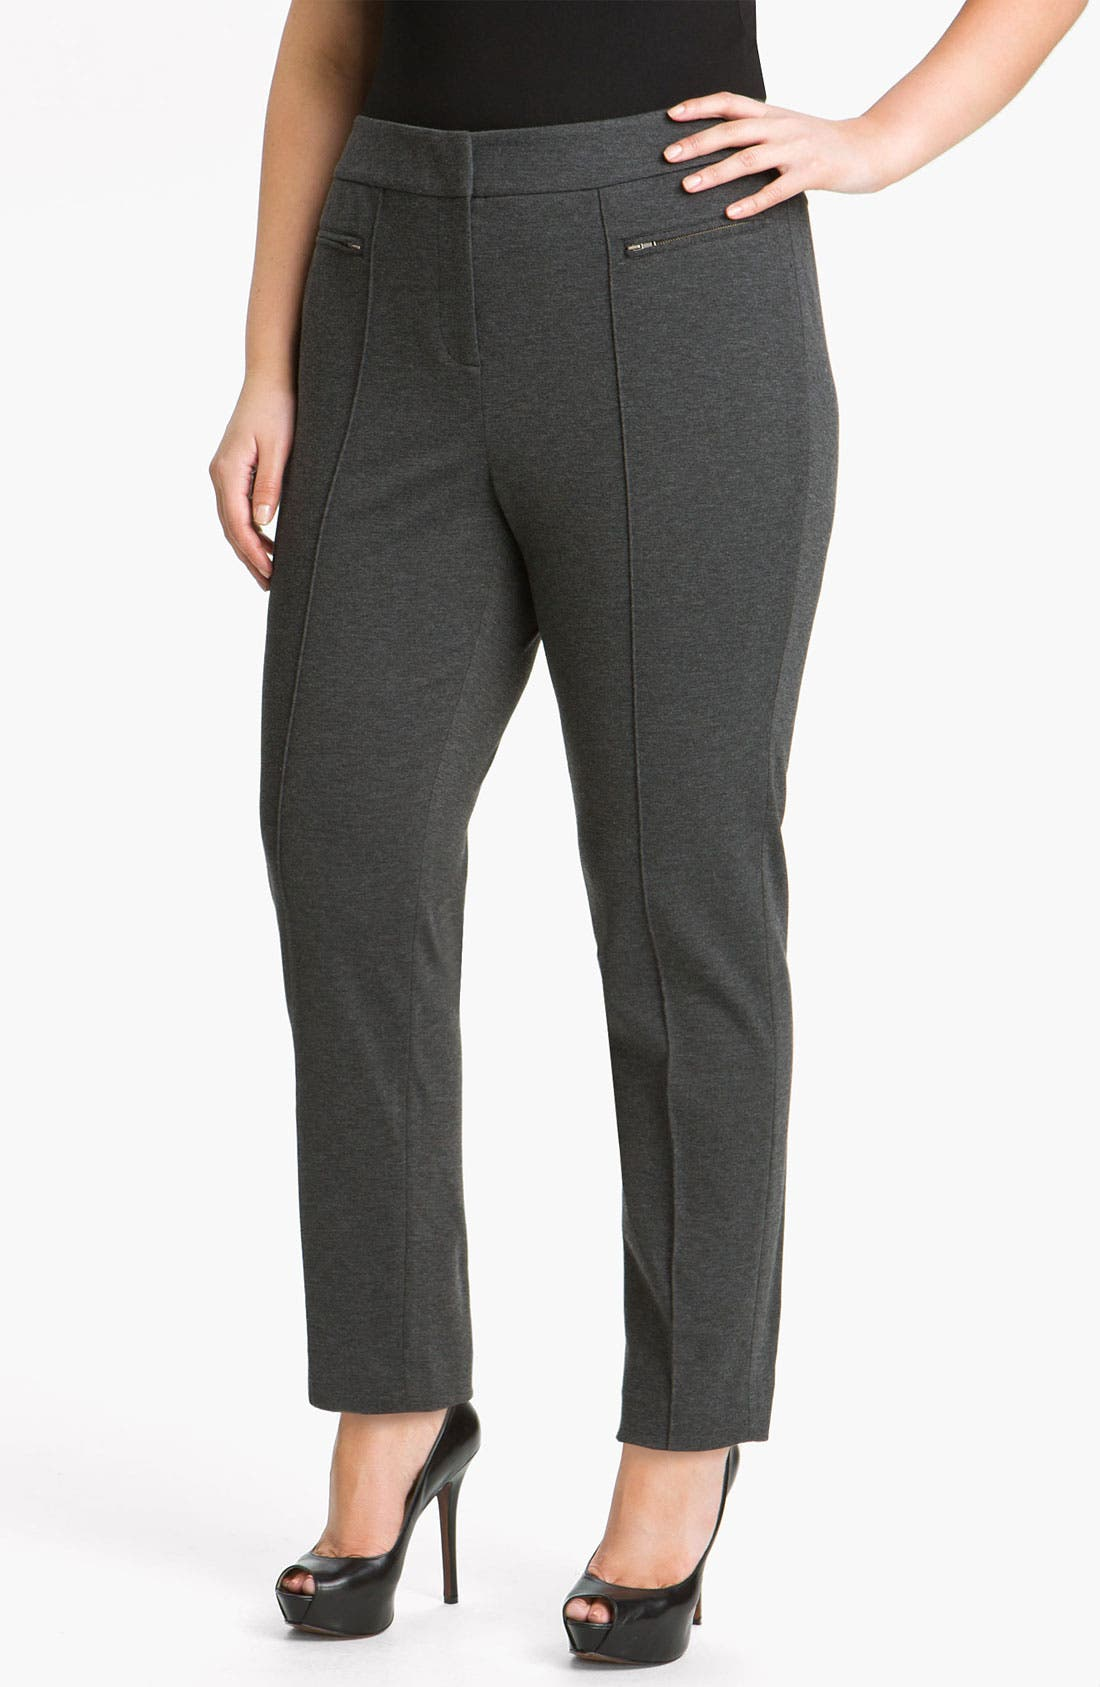 Alternate Image 1 Selected - Sejour Double Zip Pocket Ponte Pants (Plus)